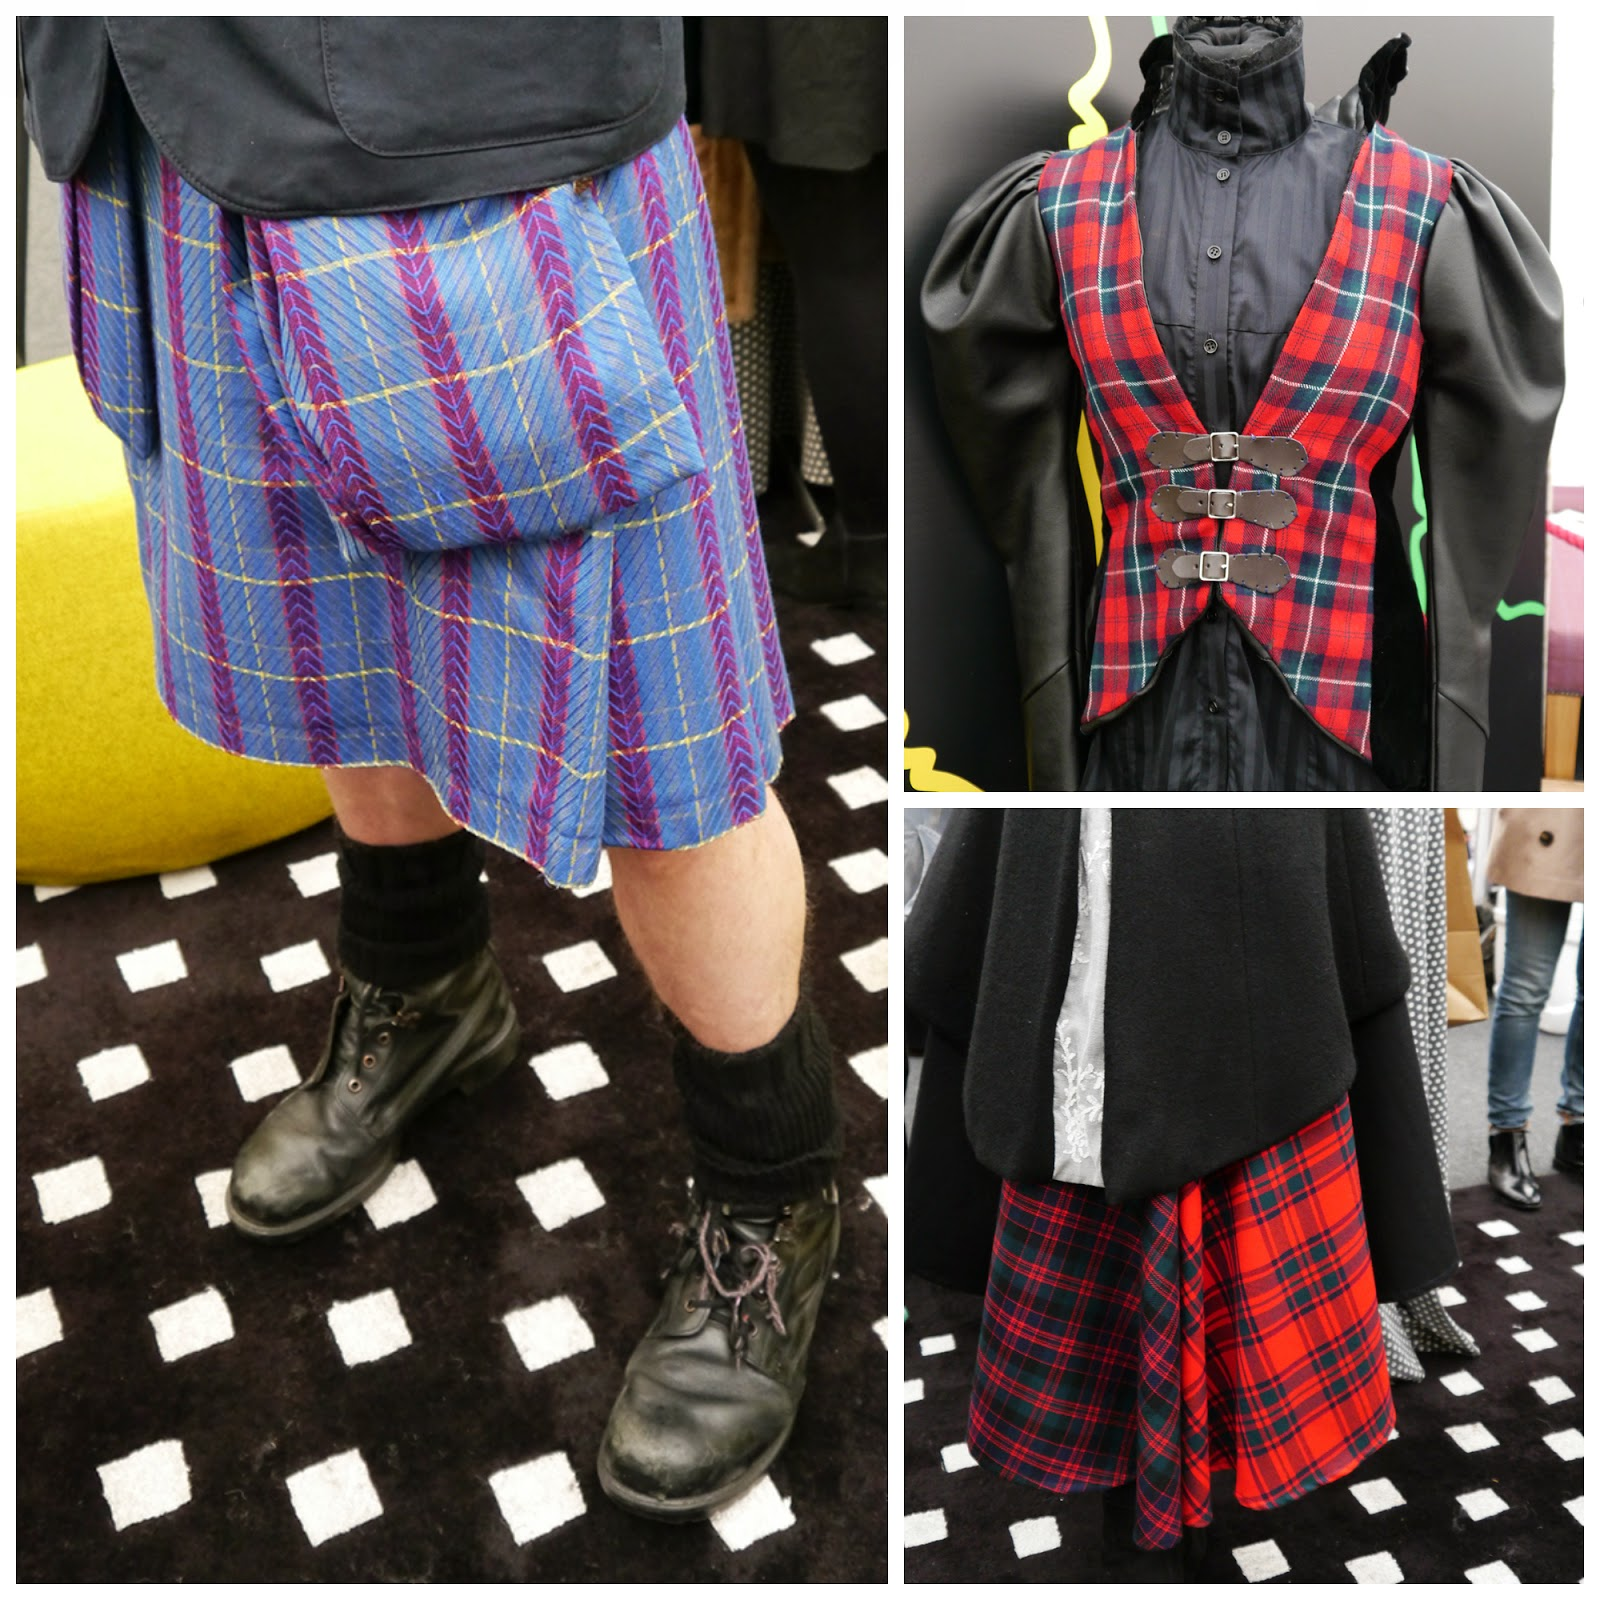 Edinburgh Fashion Week, Scottish Bloggers, #EdFashionWeek, Edinburgh, Scottish Fashion, G&V hotel, Judy R clark, tartan style, tartan at Edinburgh Fashion Week, kilt, kilt coat, tatan coat